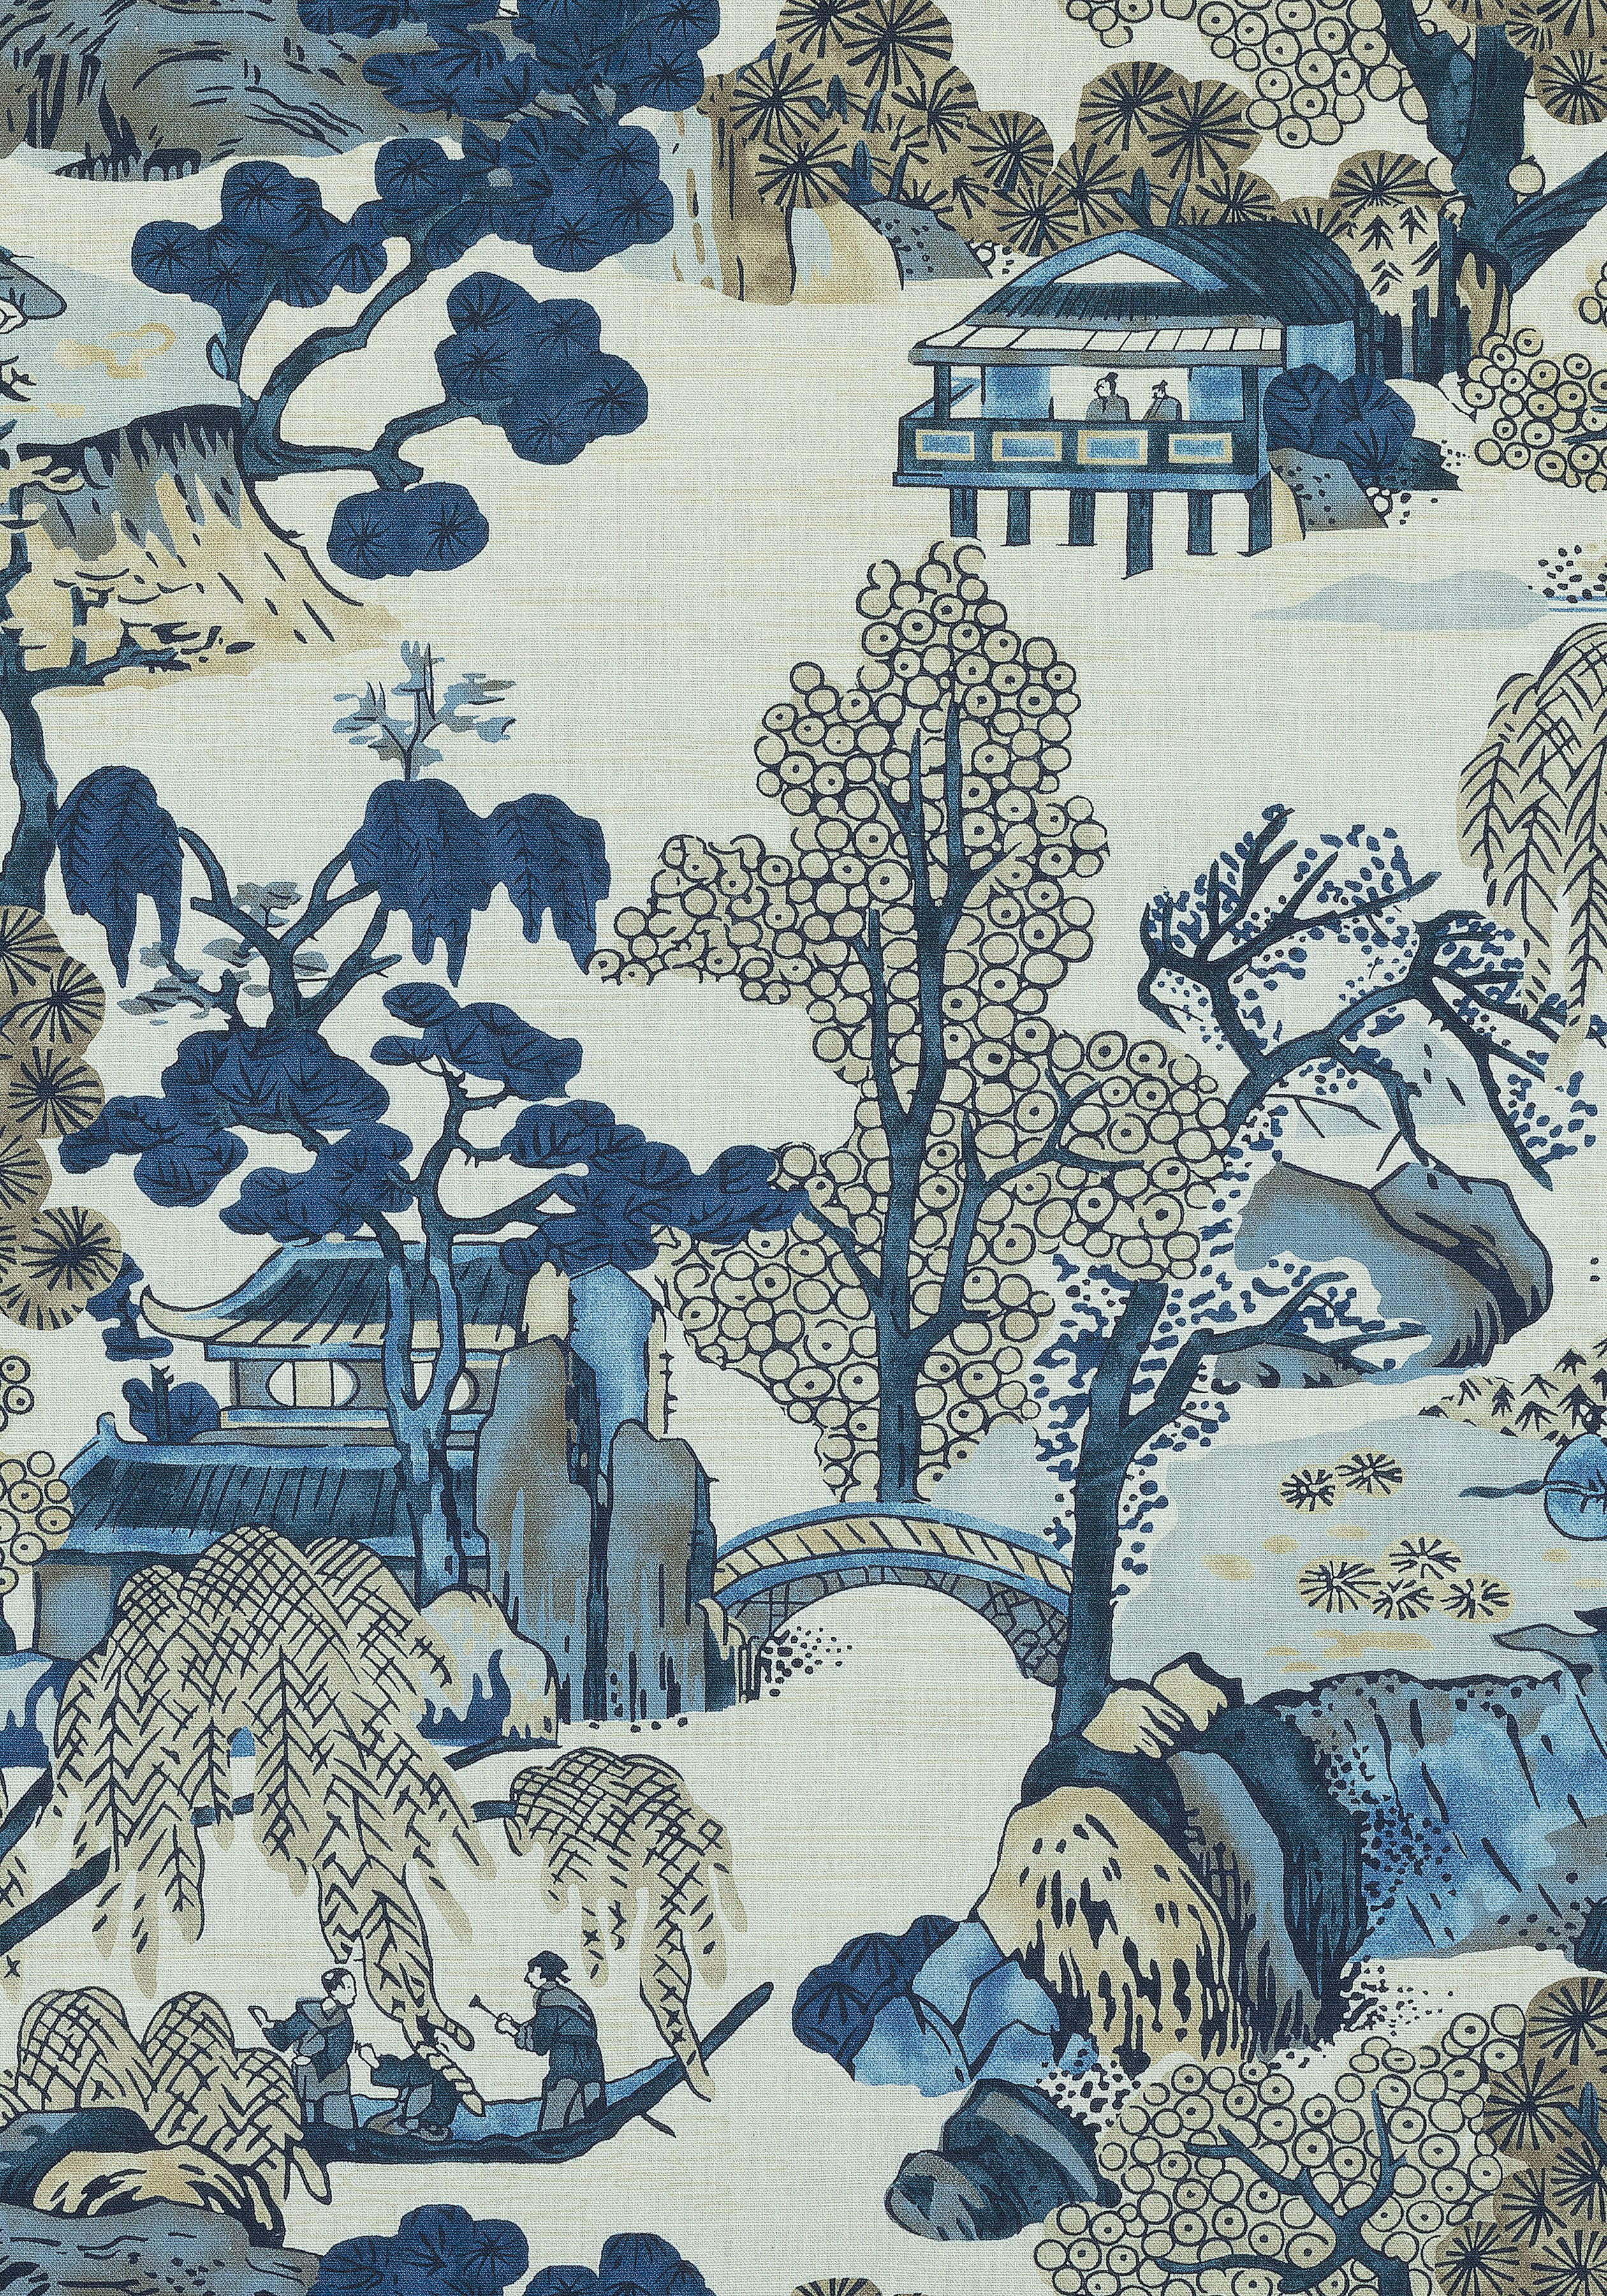 ASIAN SCENIC, Blue and Beige, F975461, Collection Dynasty